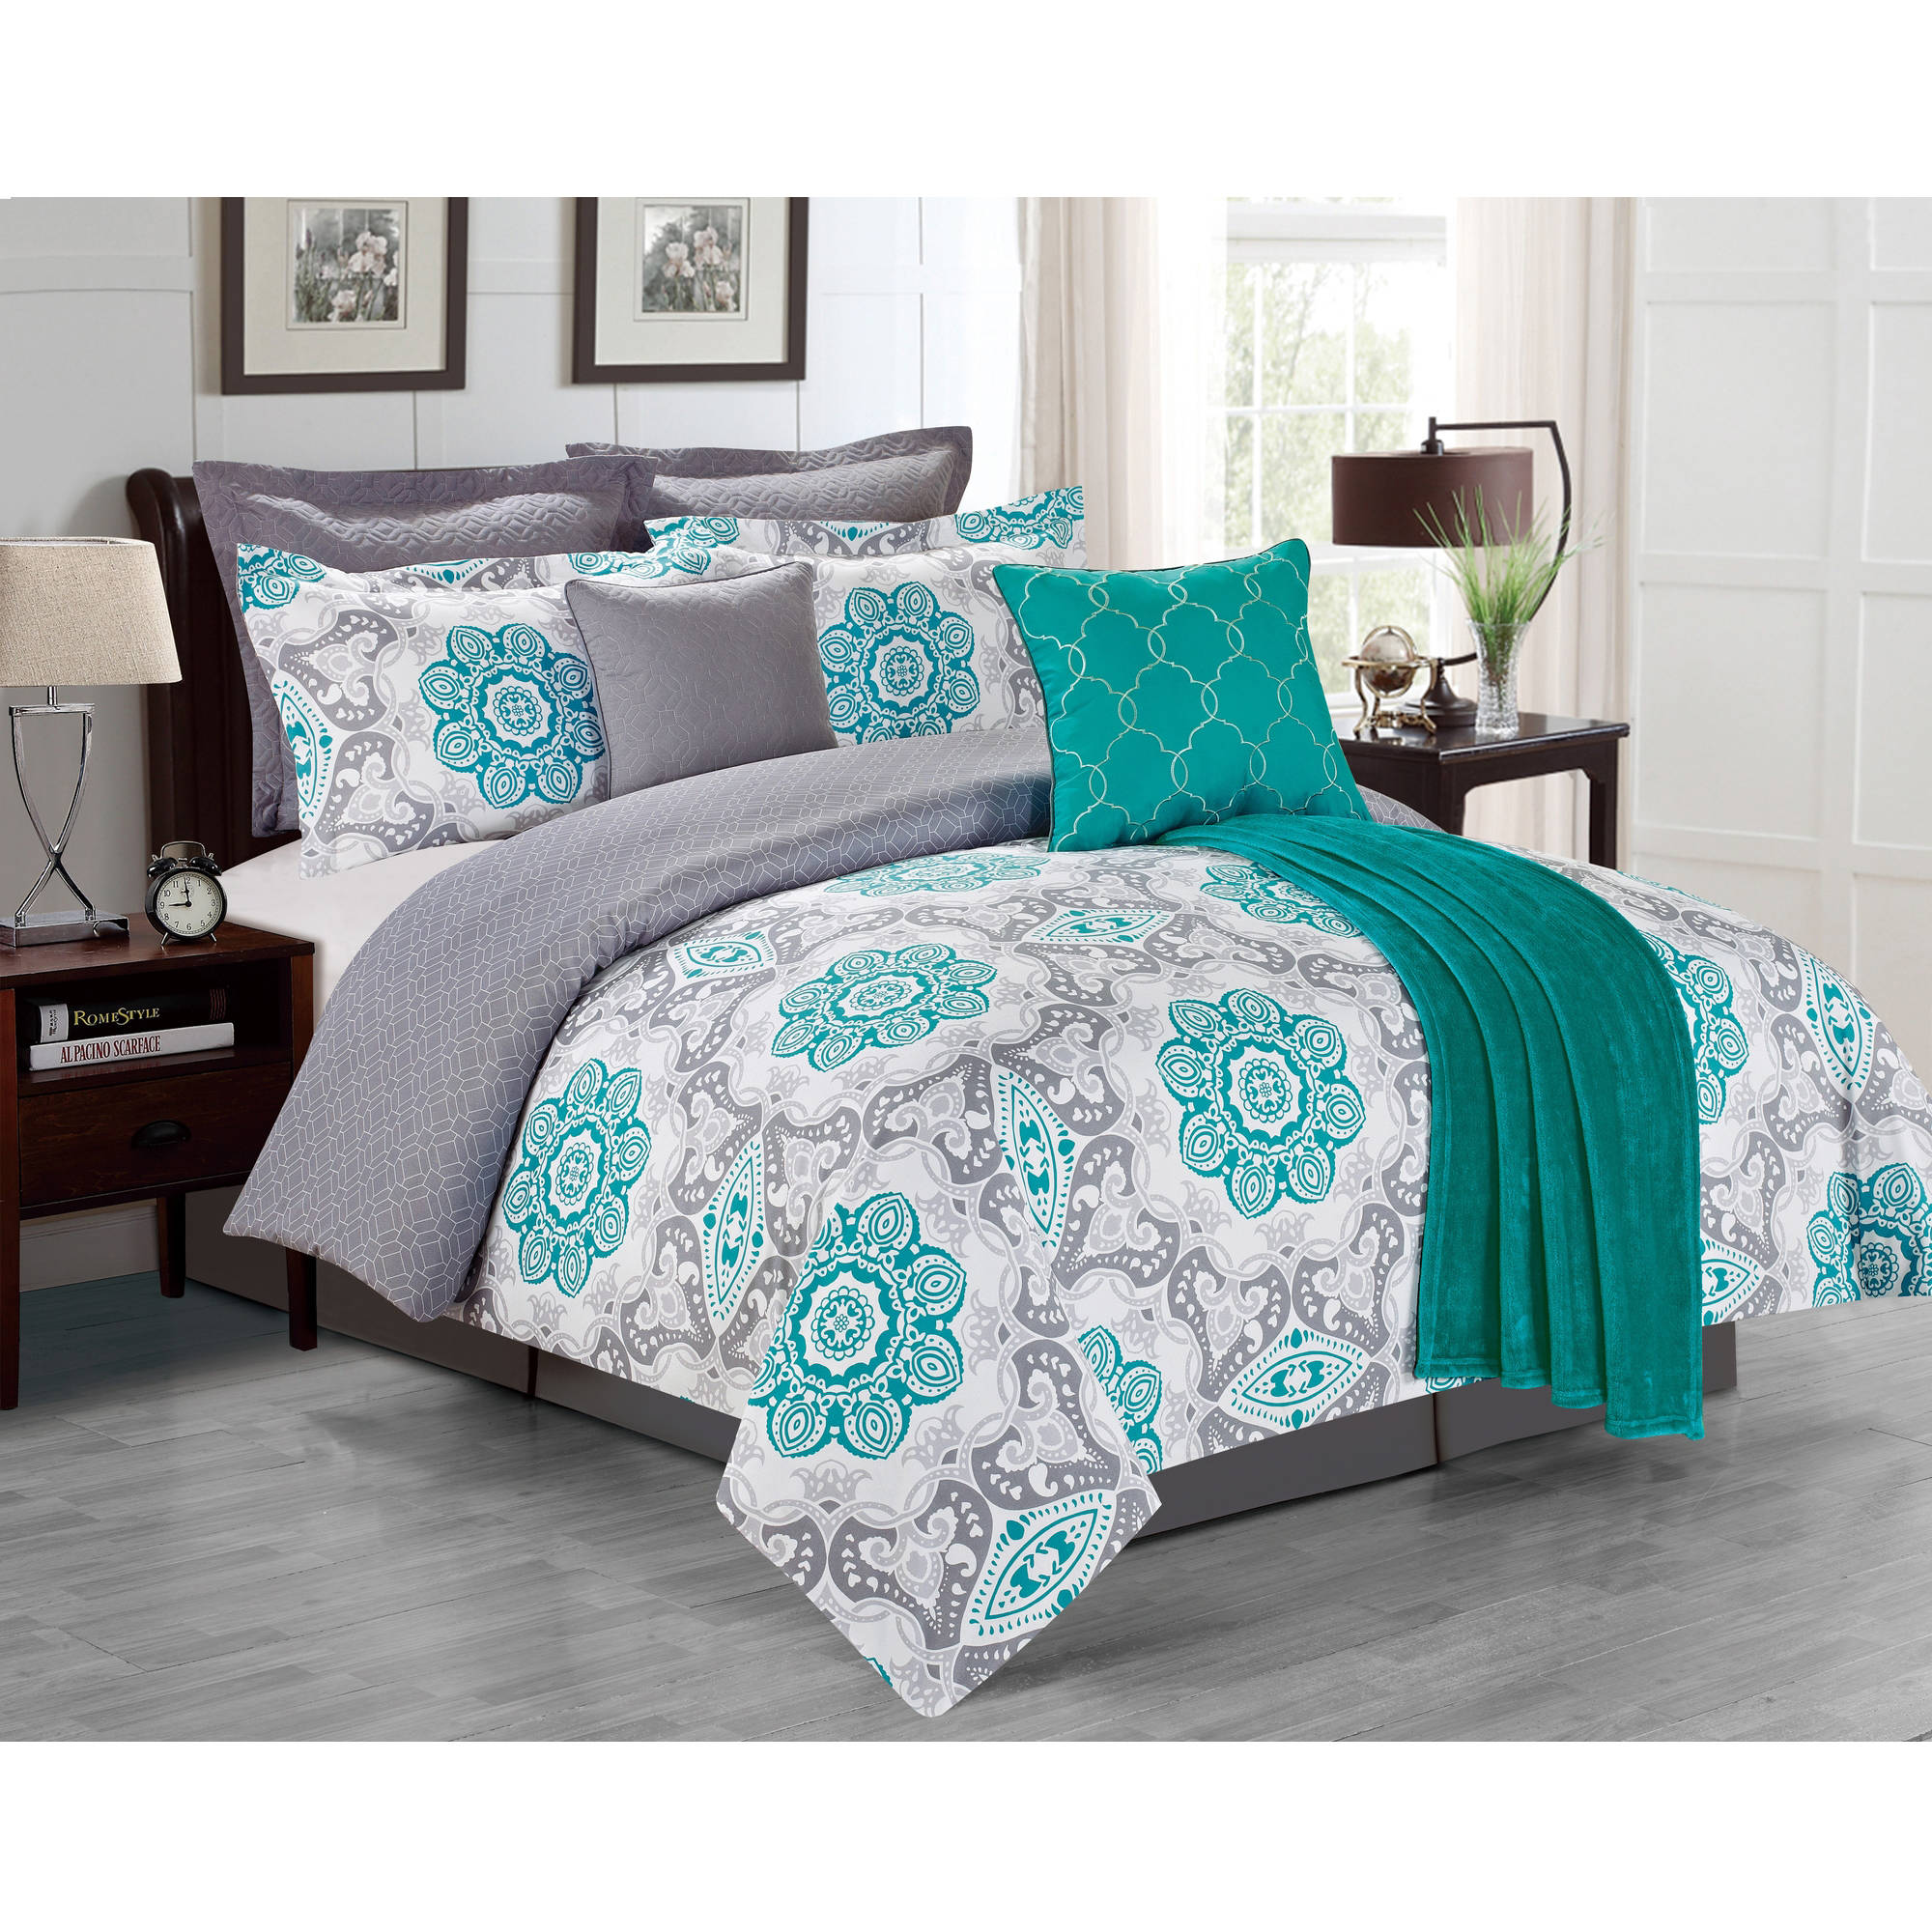 ideas set bedding sets and aqua grey teal lostcoastshuttle design of color option image creative comforter